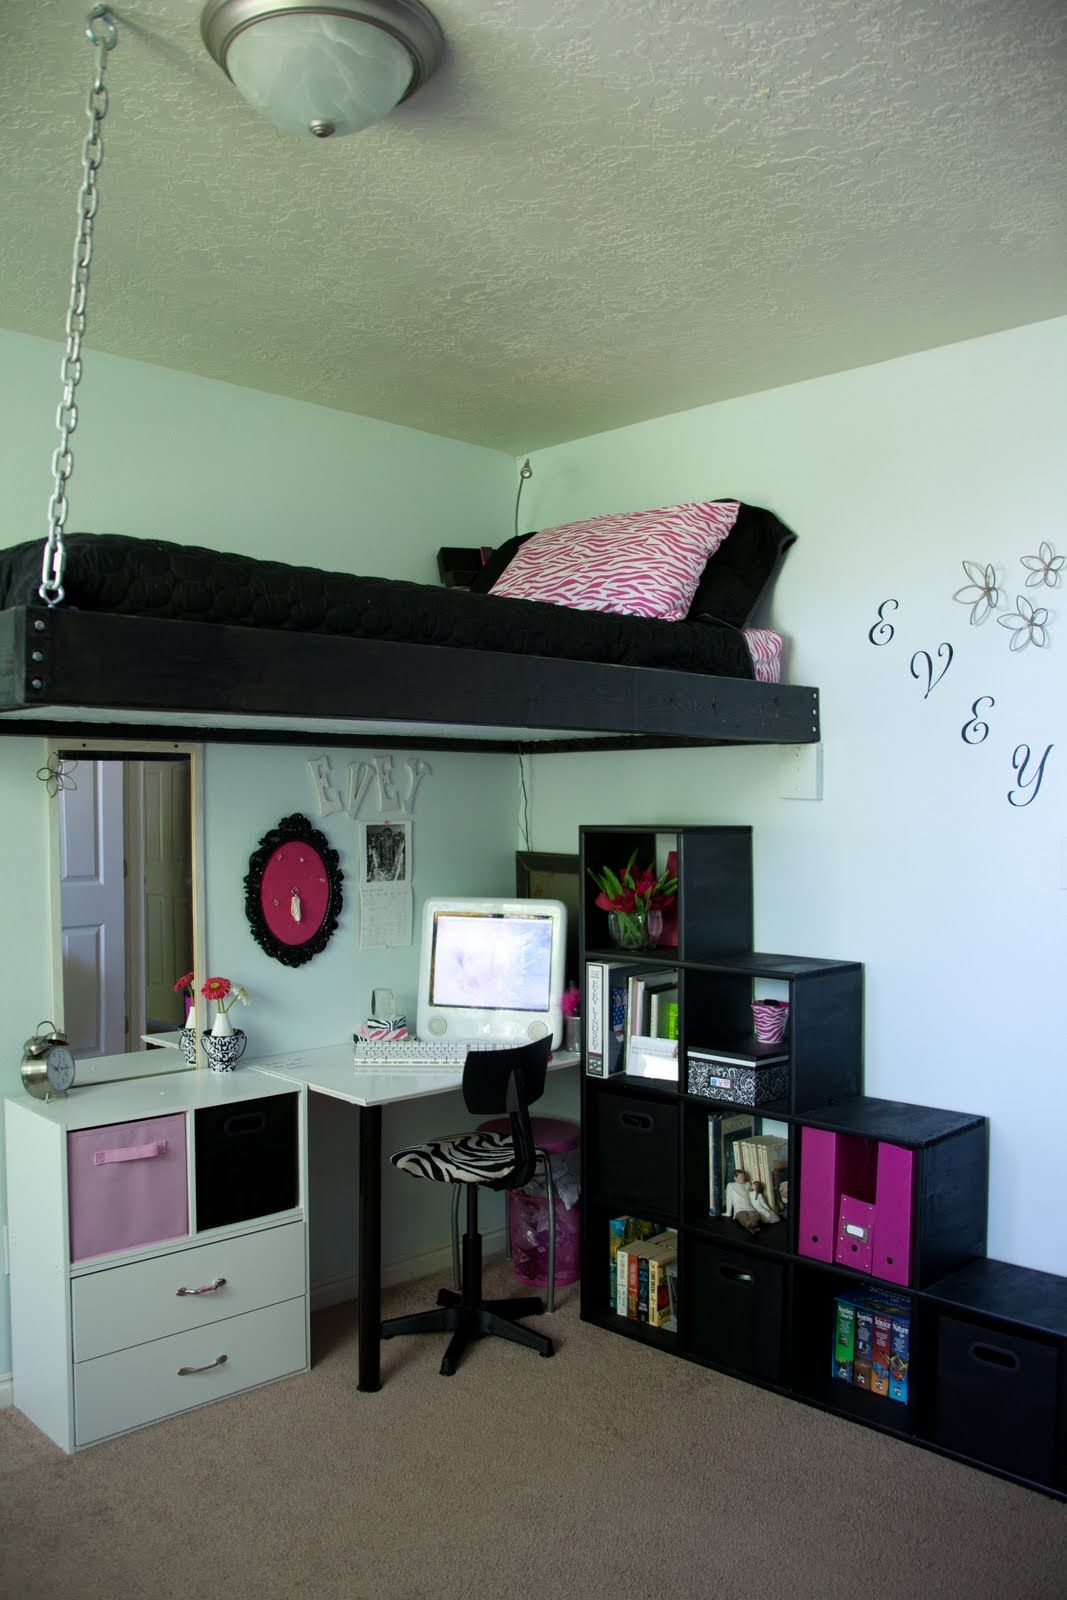 homemade loft bed great way to save space cute home 21289 | 755a84da99773e915c521143902143da